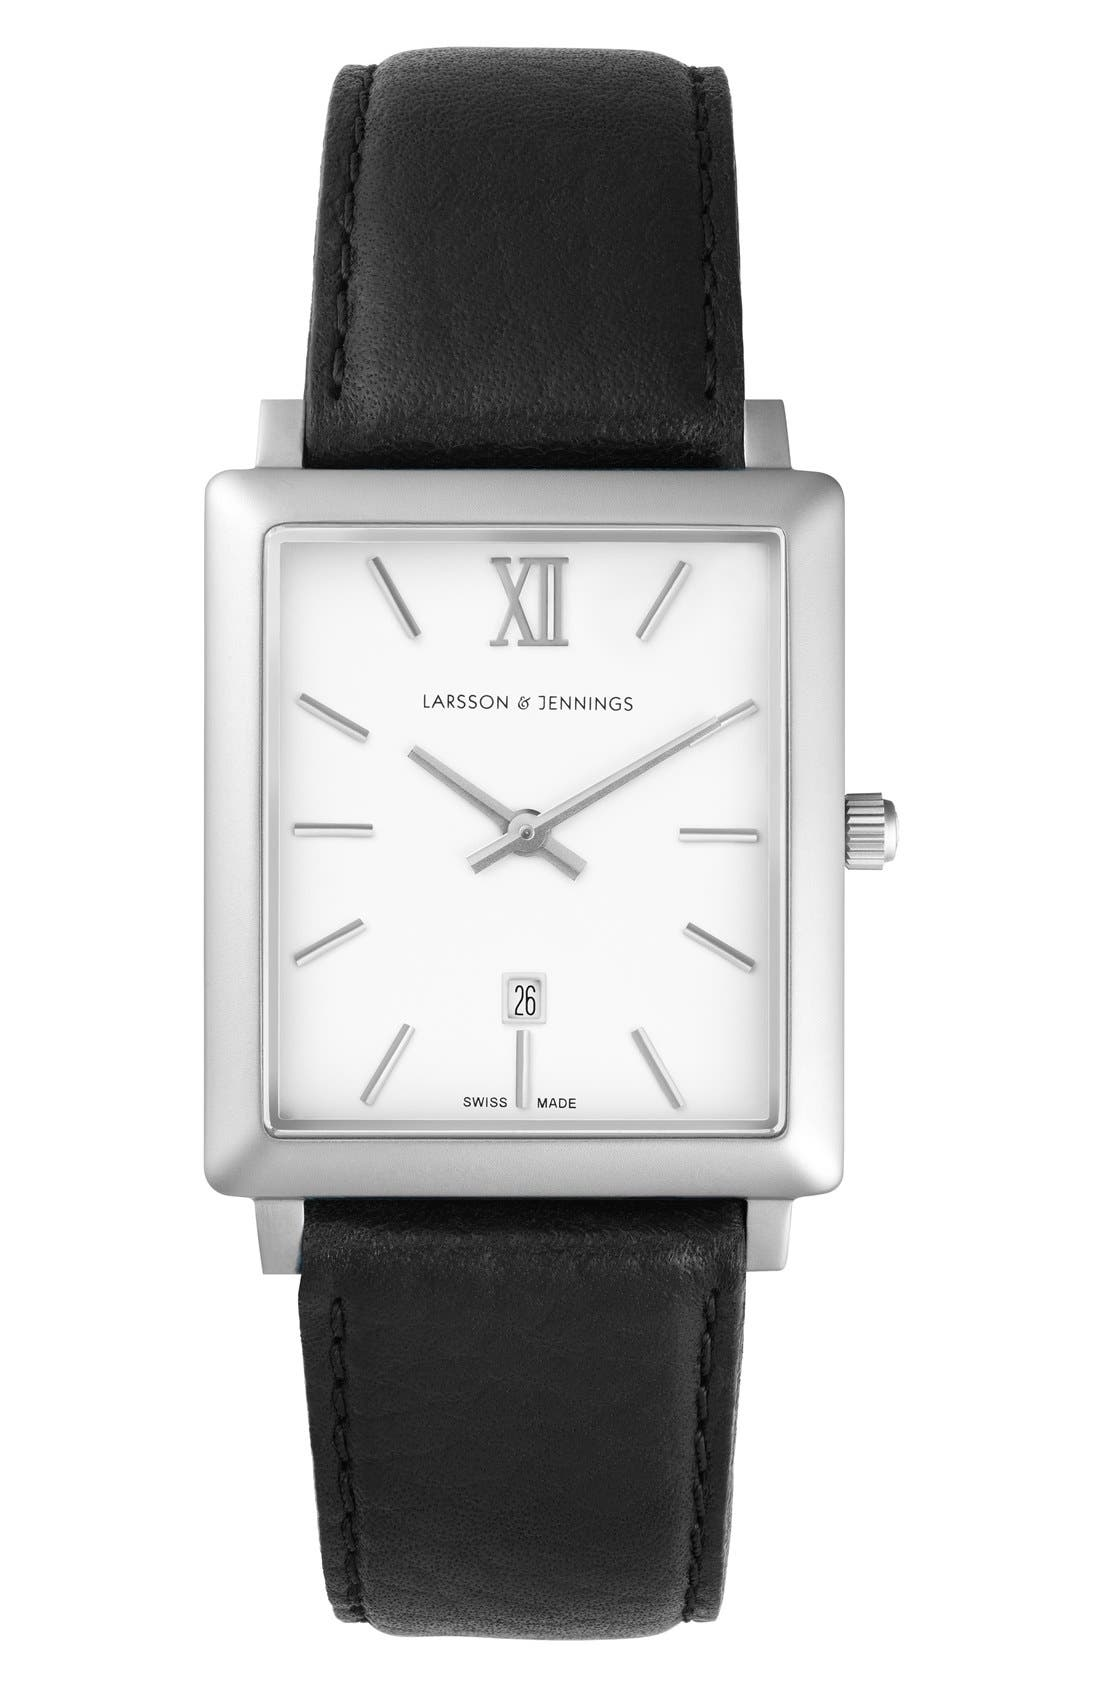 LARSSON & JENNINGS Norse Rectangular Leather Strap Watch, 29mm x 40mm